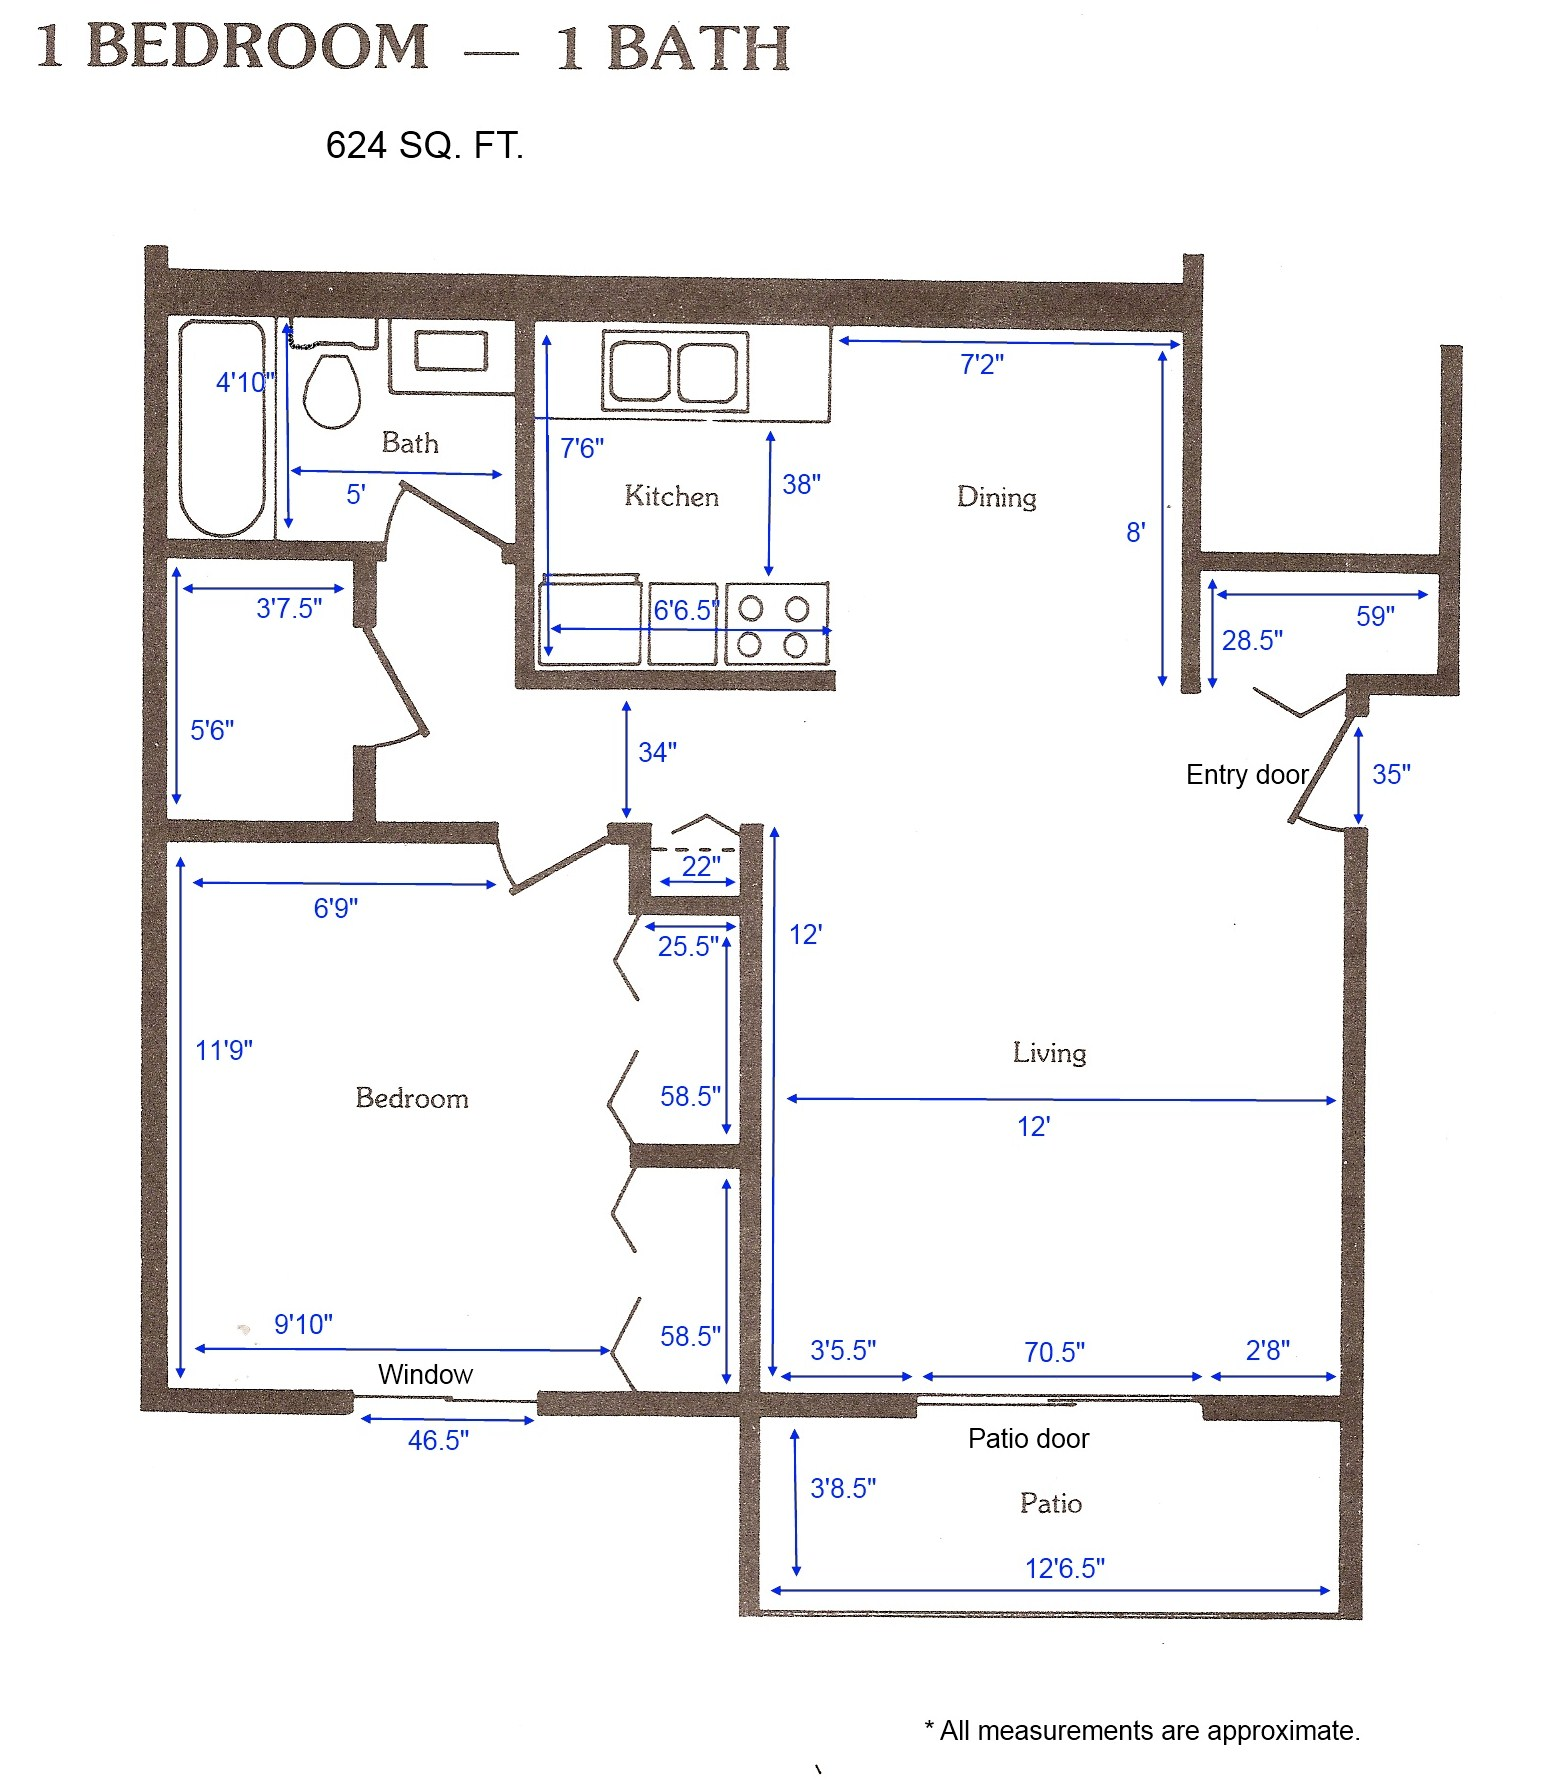 Cedar green apartments apartment layouts for I bedroom apartment